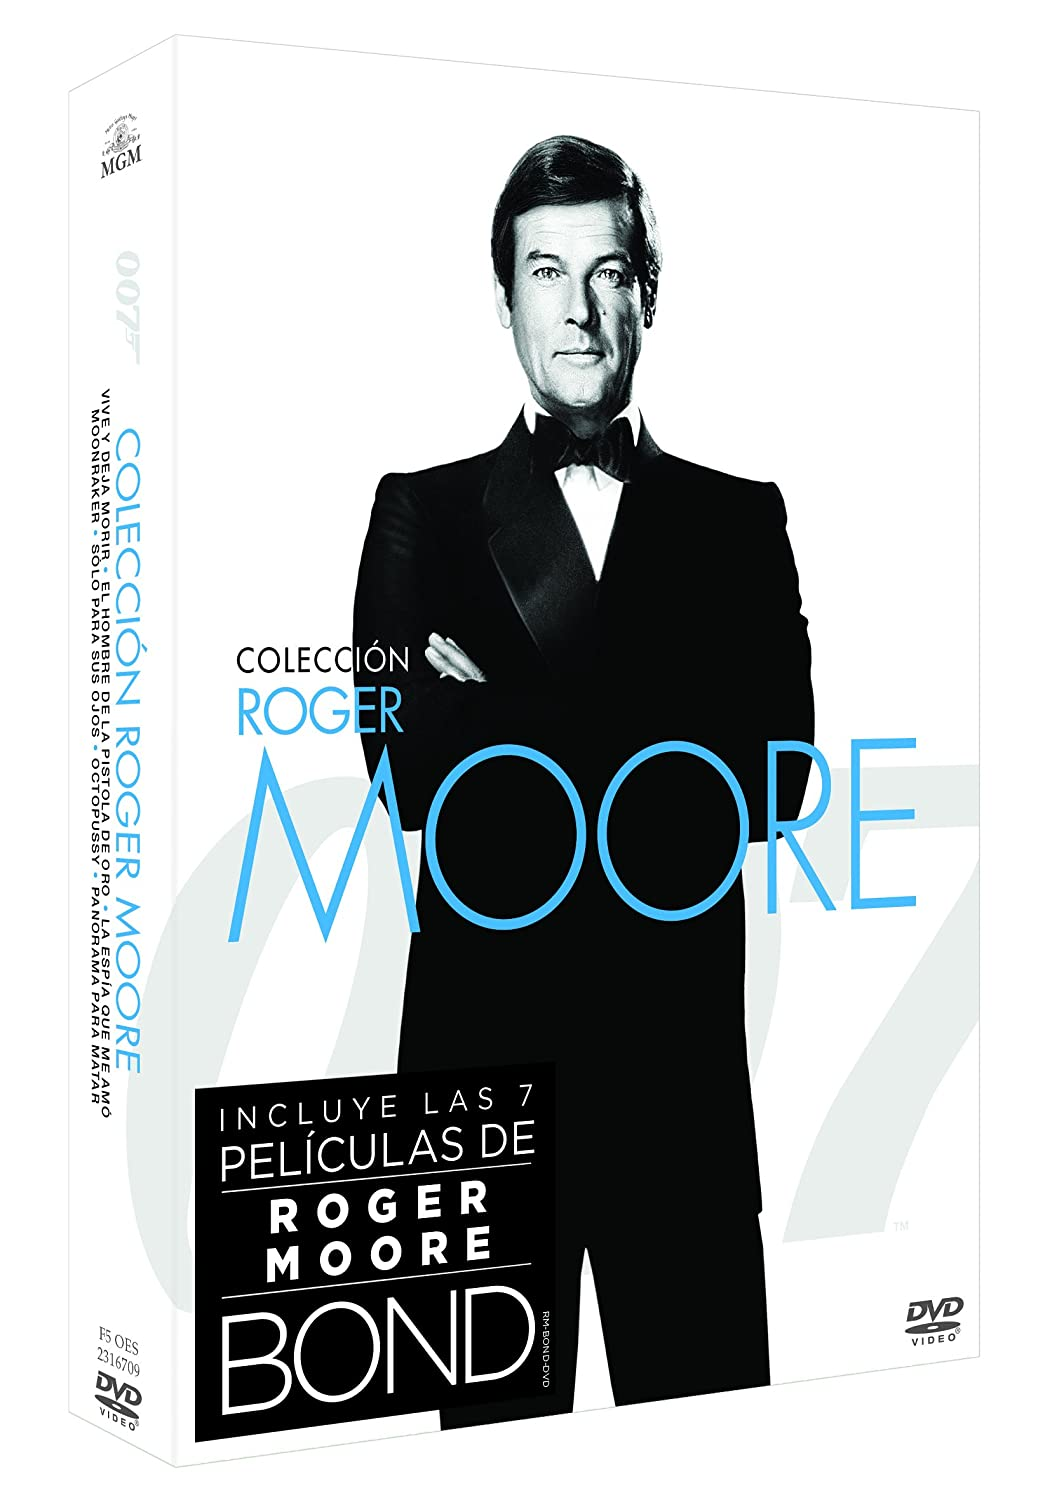 Bond: Roger Moore Collection [DVD]